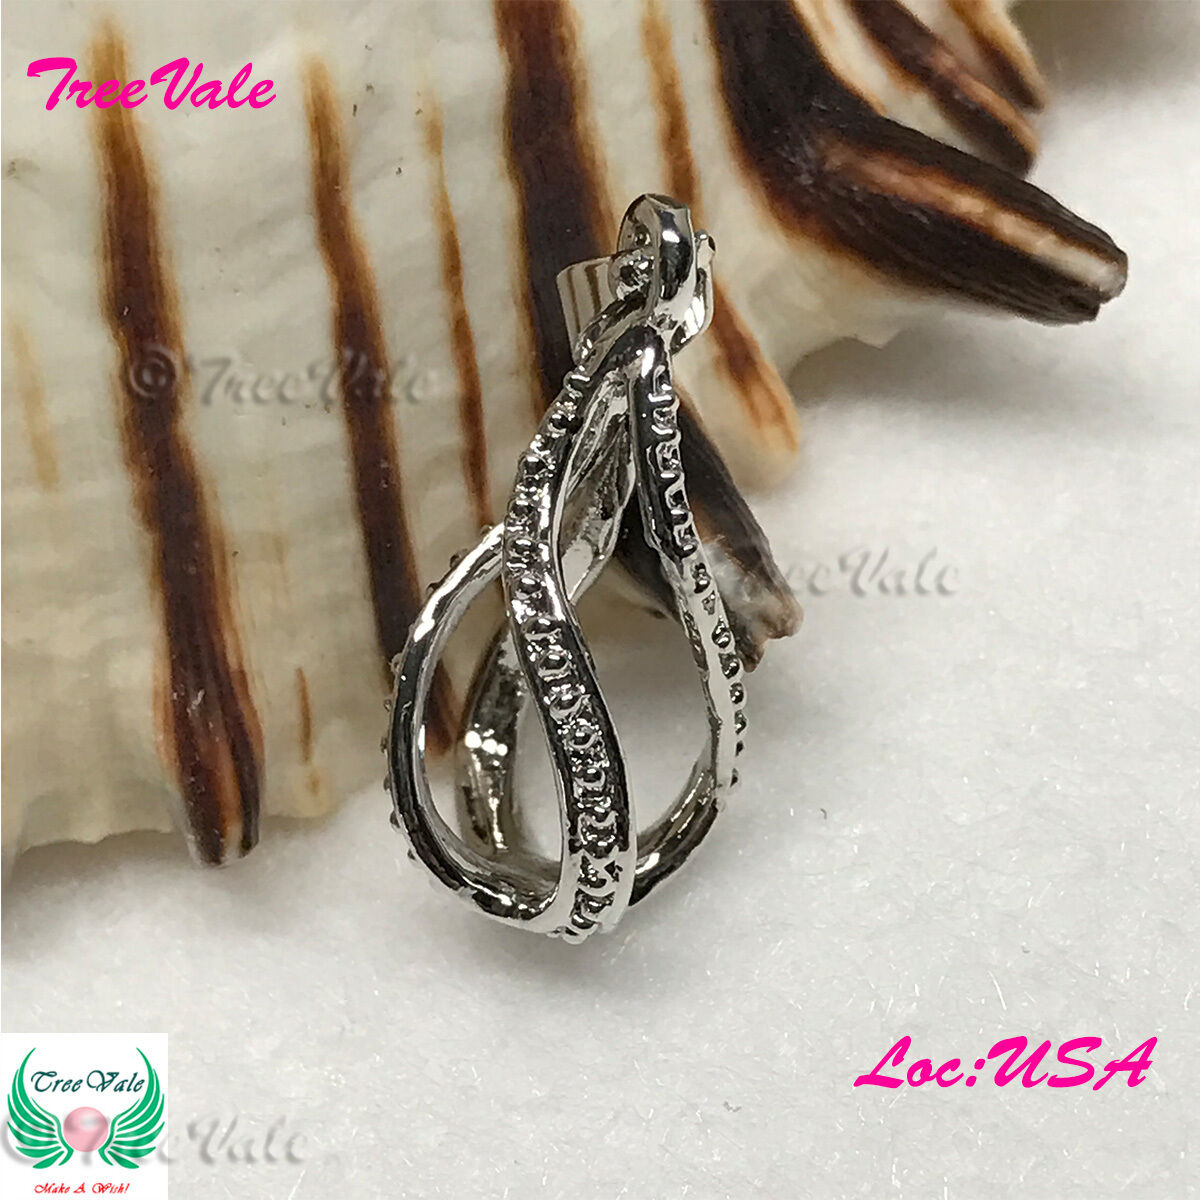 Twister Rainy Drop - Pearl Cage Pendant - Silver Plated Fit